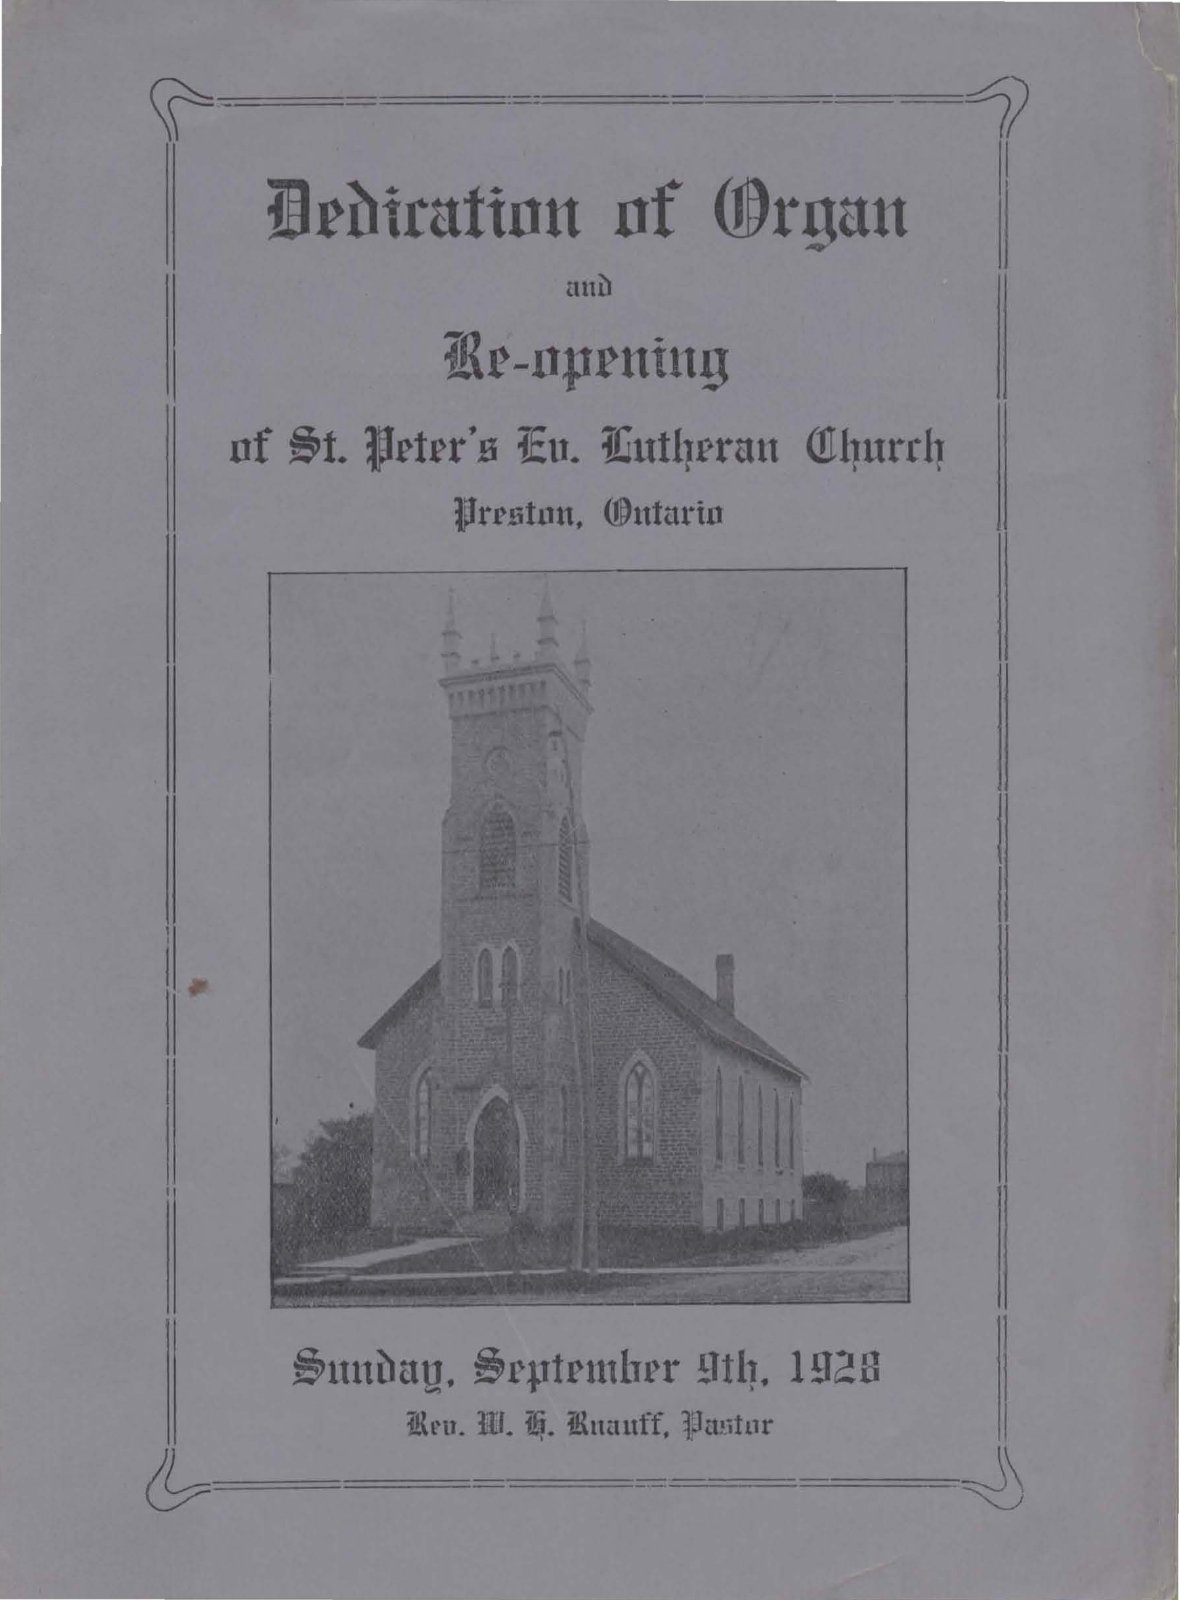 Dedication of Organ and Re-openeing of St. Peter's Evangelical Lutheran Church, Preston, Ontario